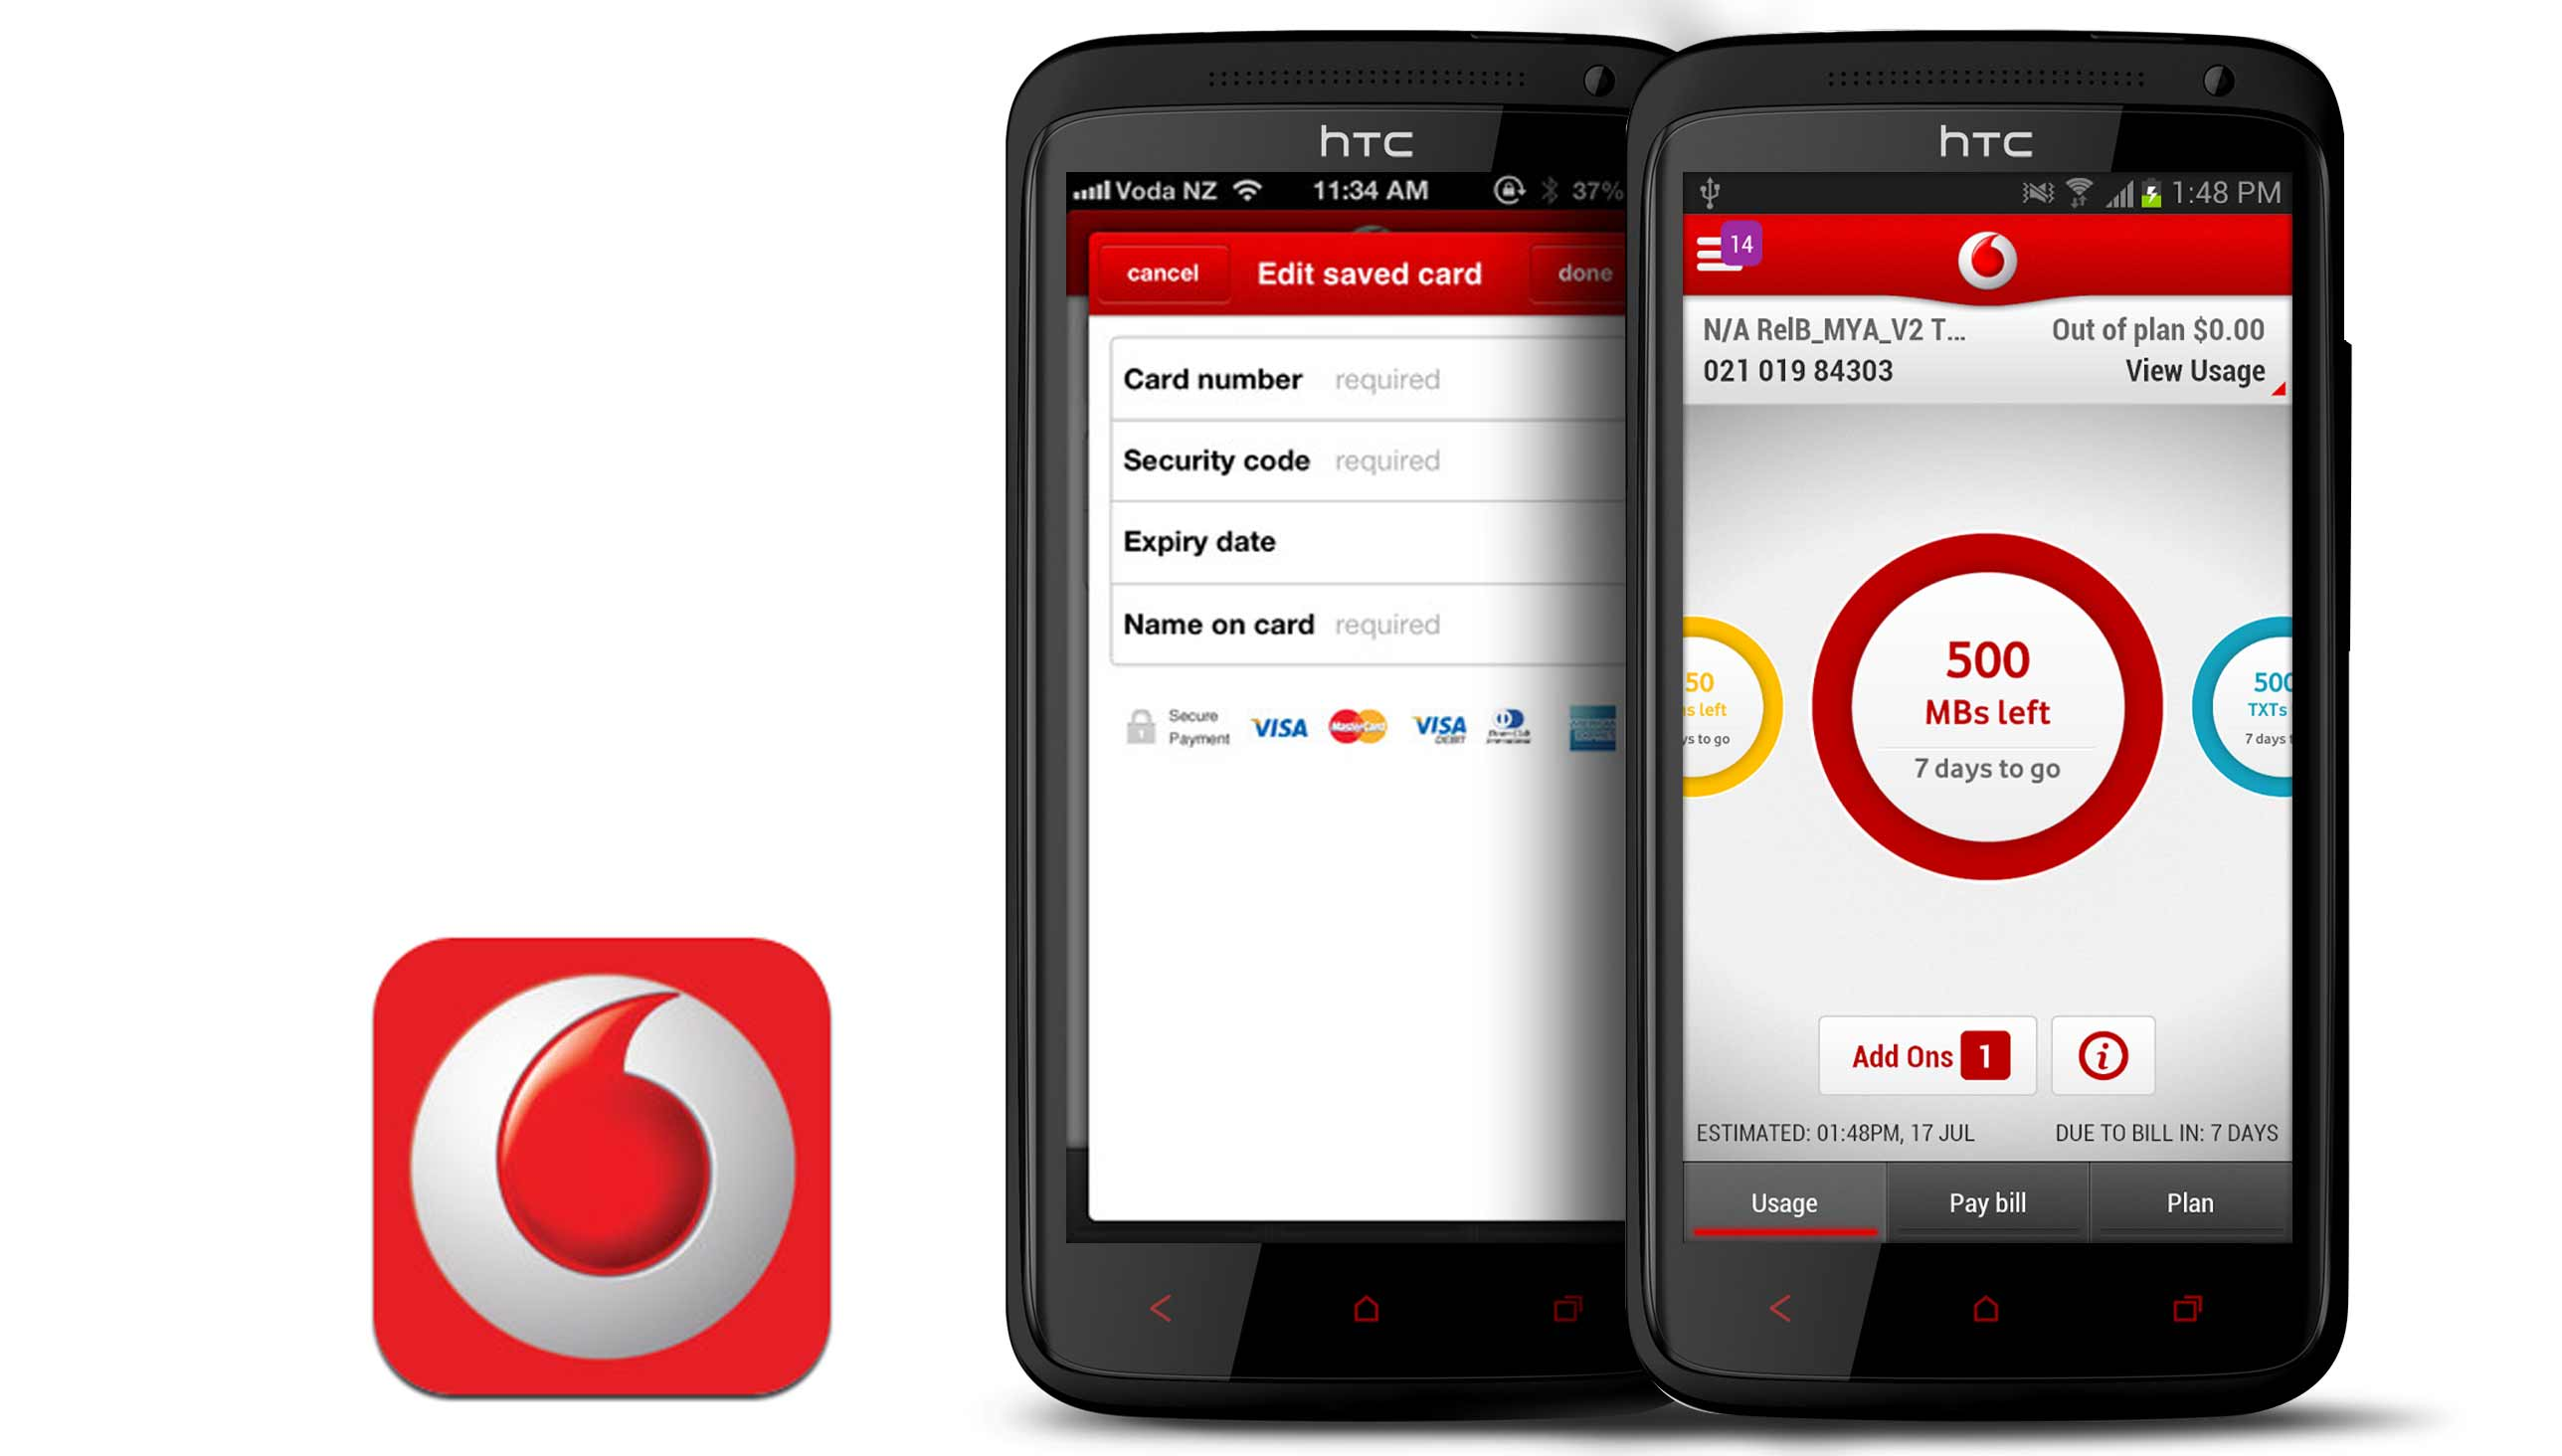 My Vodafone App with  Android Phone